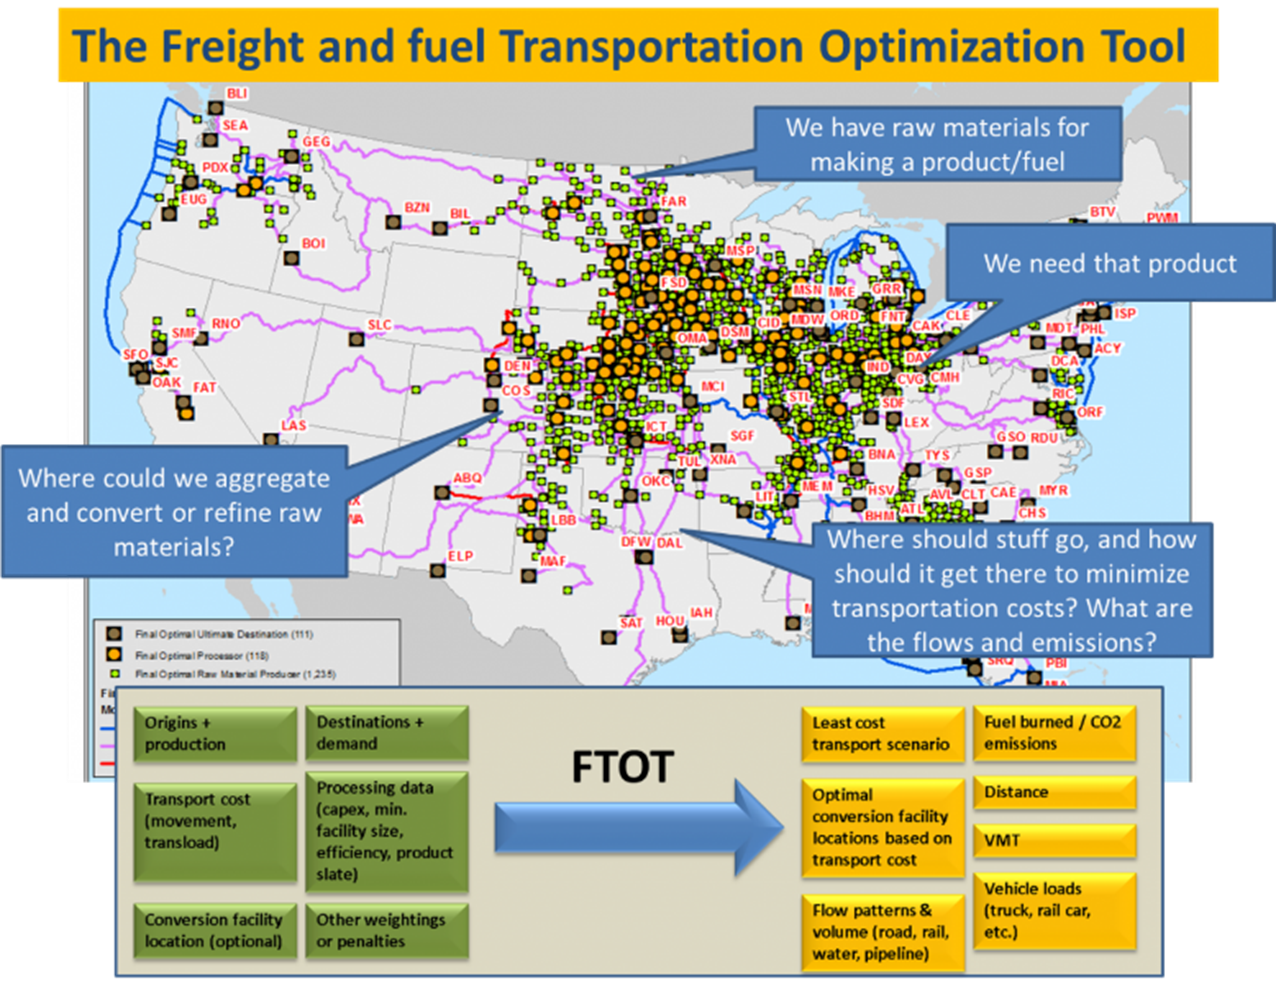 U.S. DOT Volpe Center Tool Evaluates Freight and Fuel Transport Options.